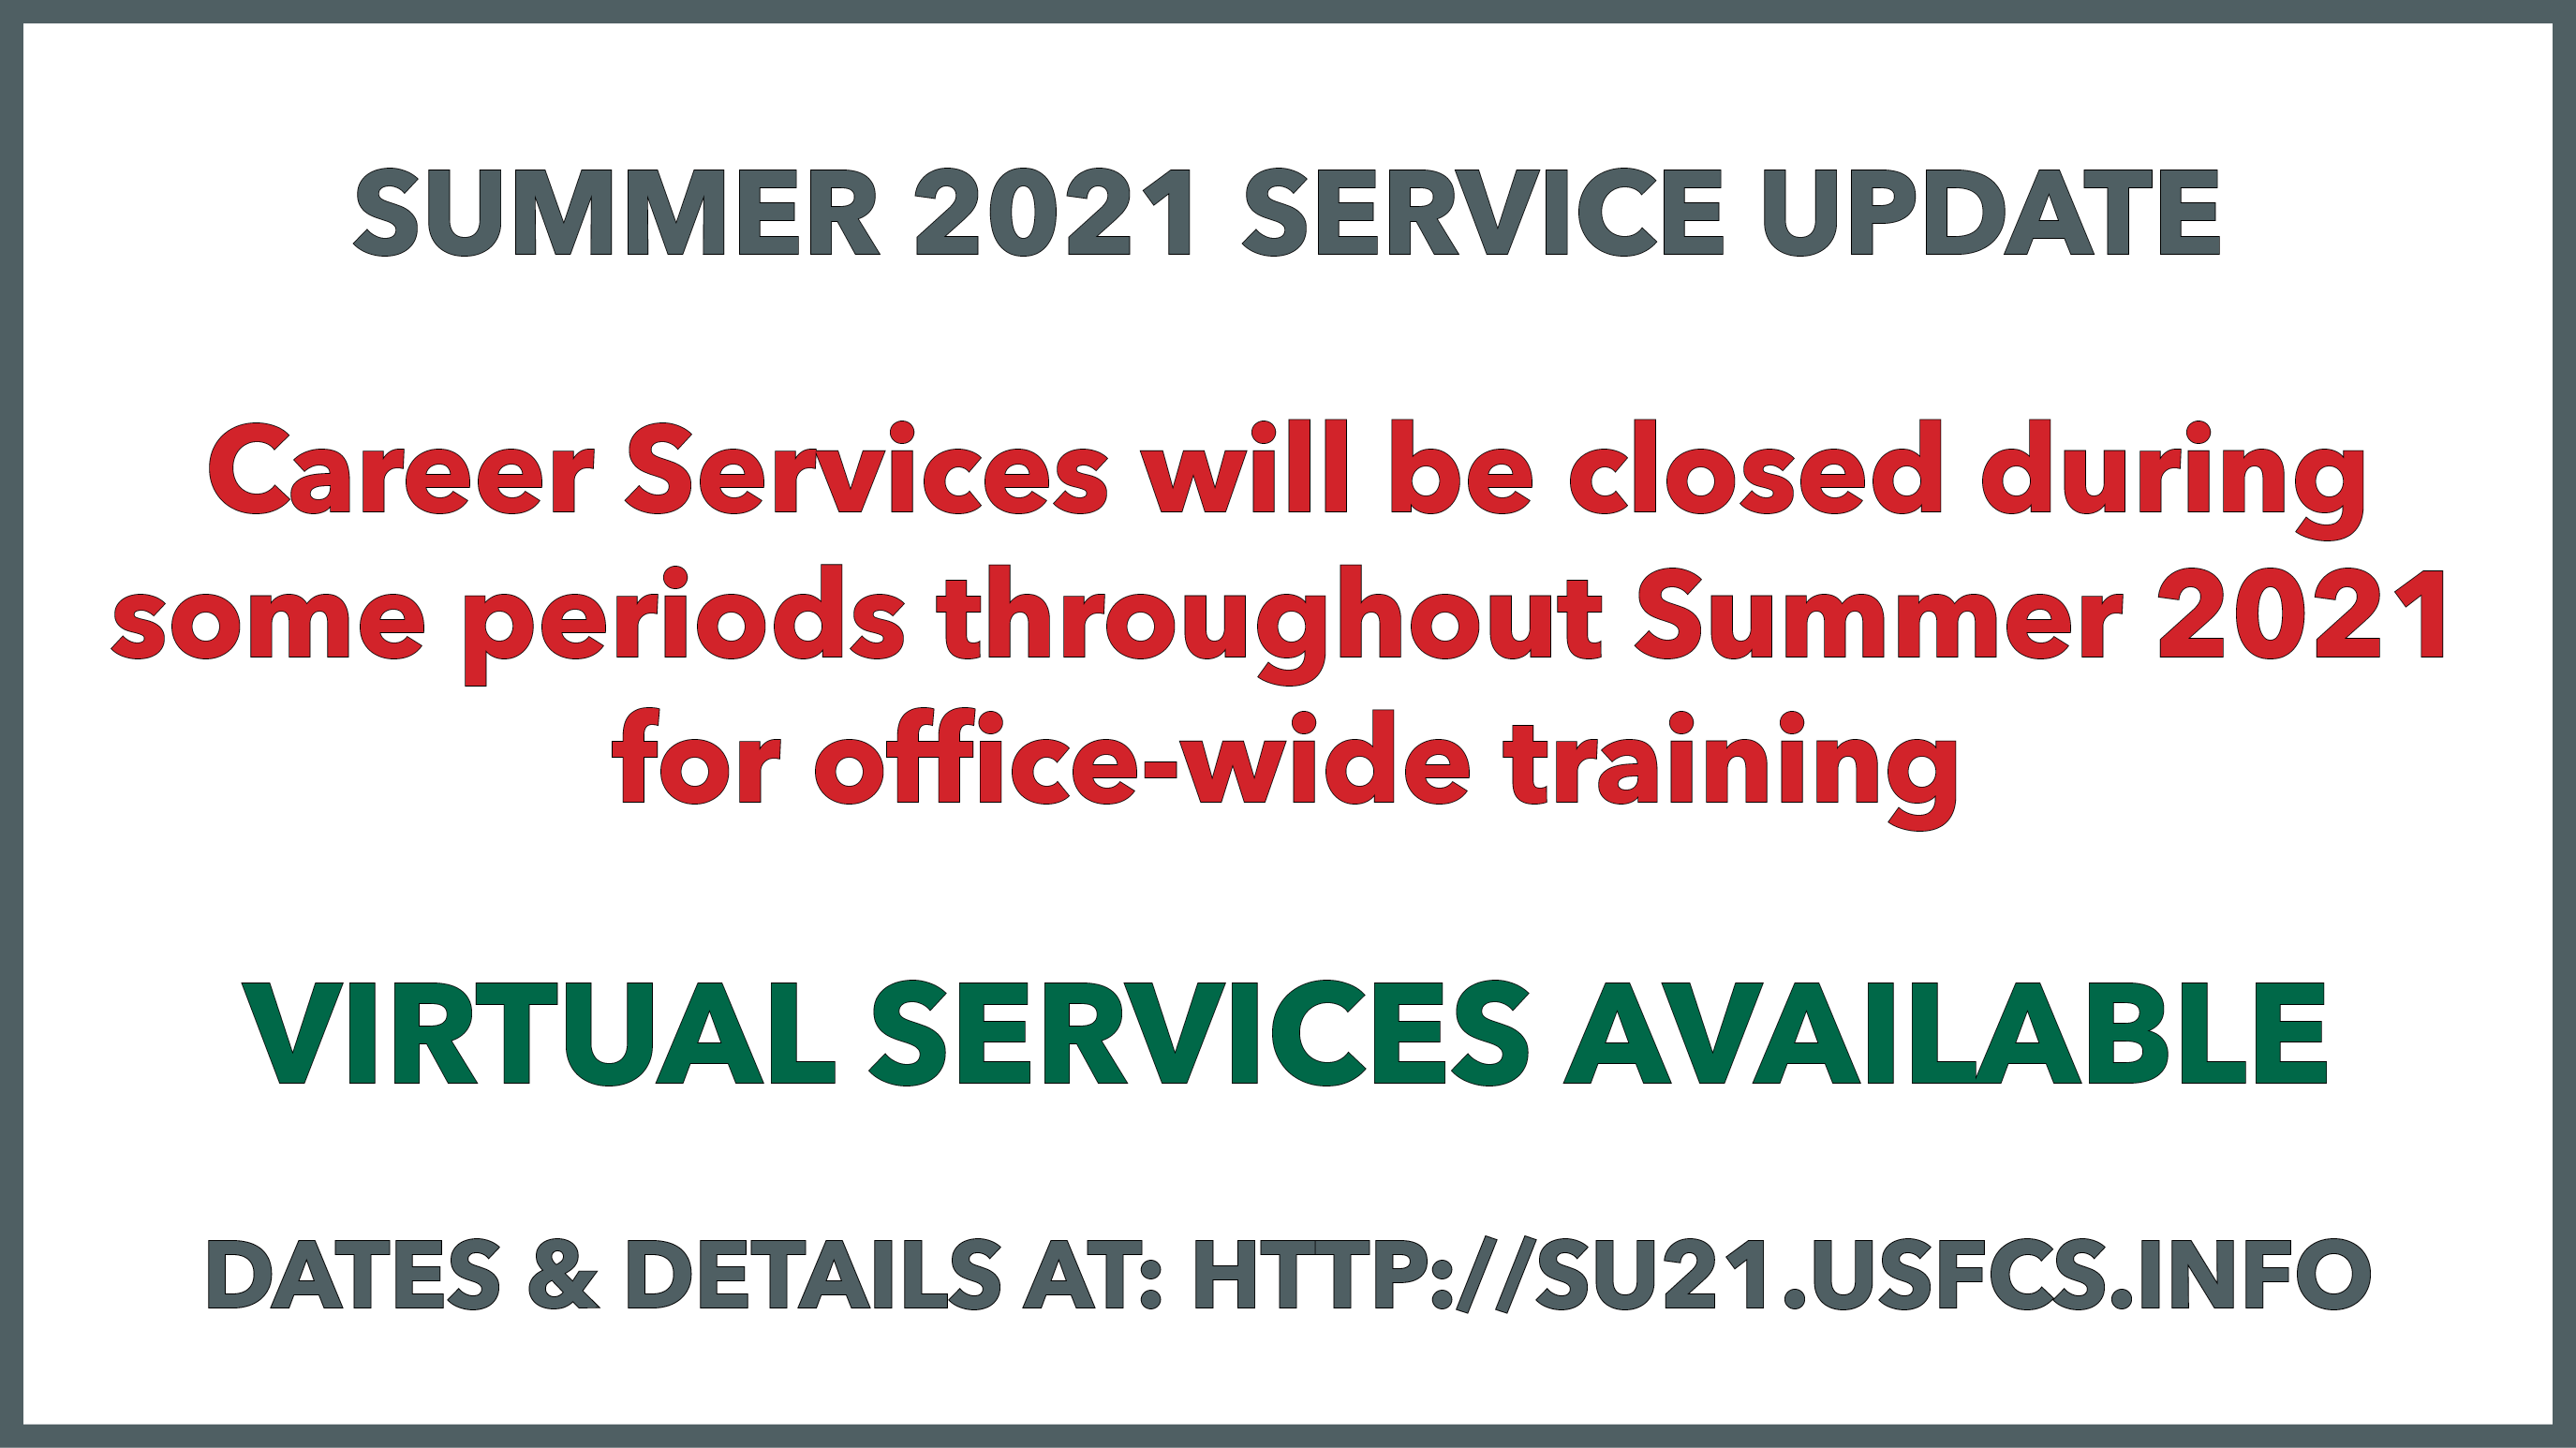 Graphic with text letting students know we will have virtual services available during periods when our office is closed throughout Summer 2021.